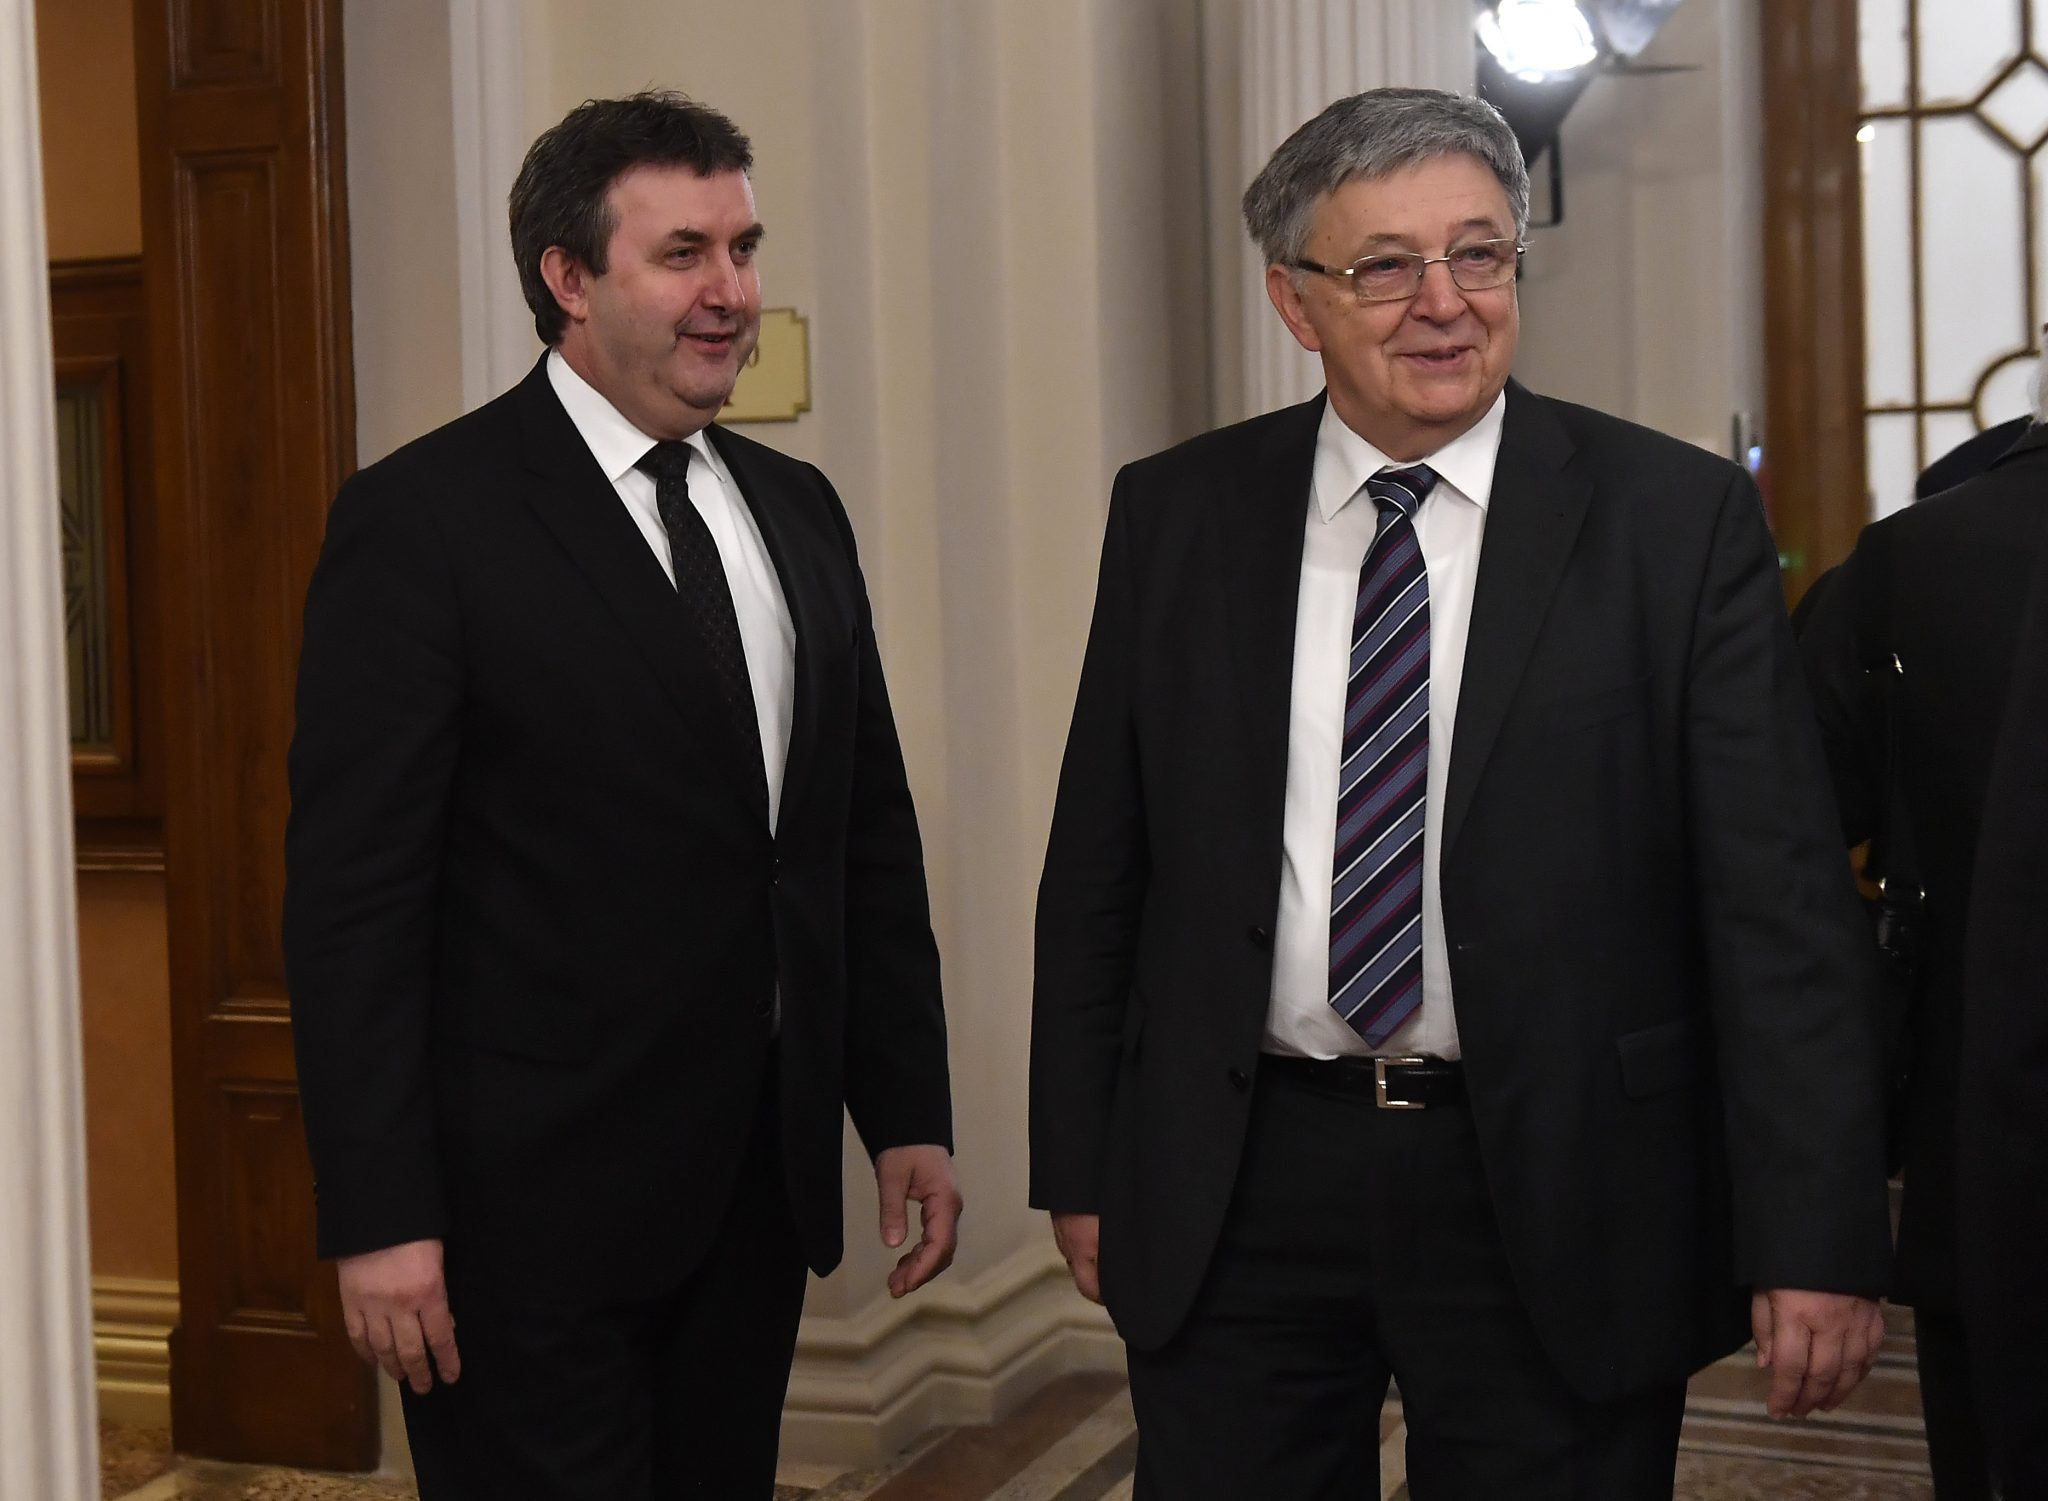 Palkovics Rejects Compromise and is Ready to Use Force to Reform Academy post's picture